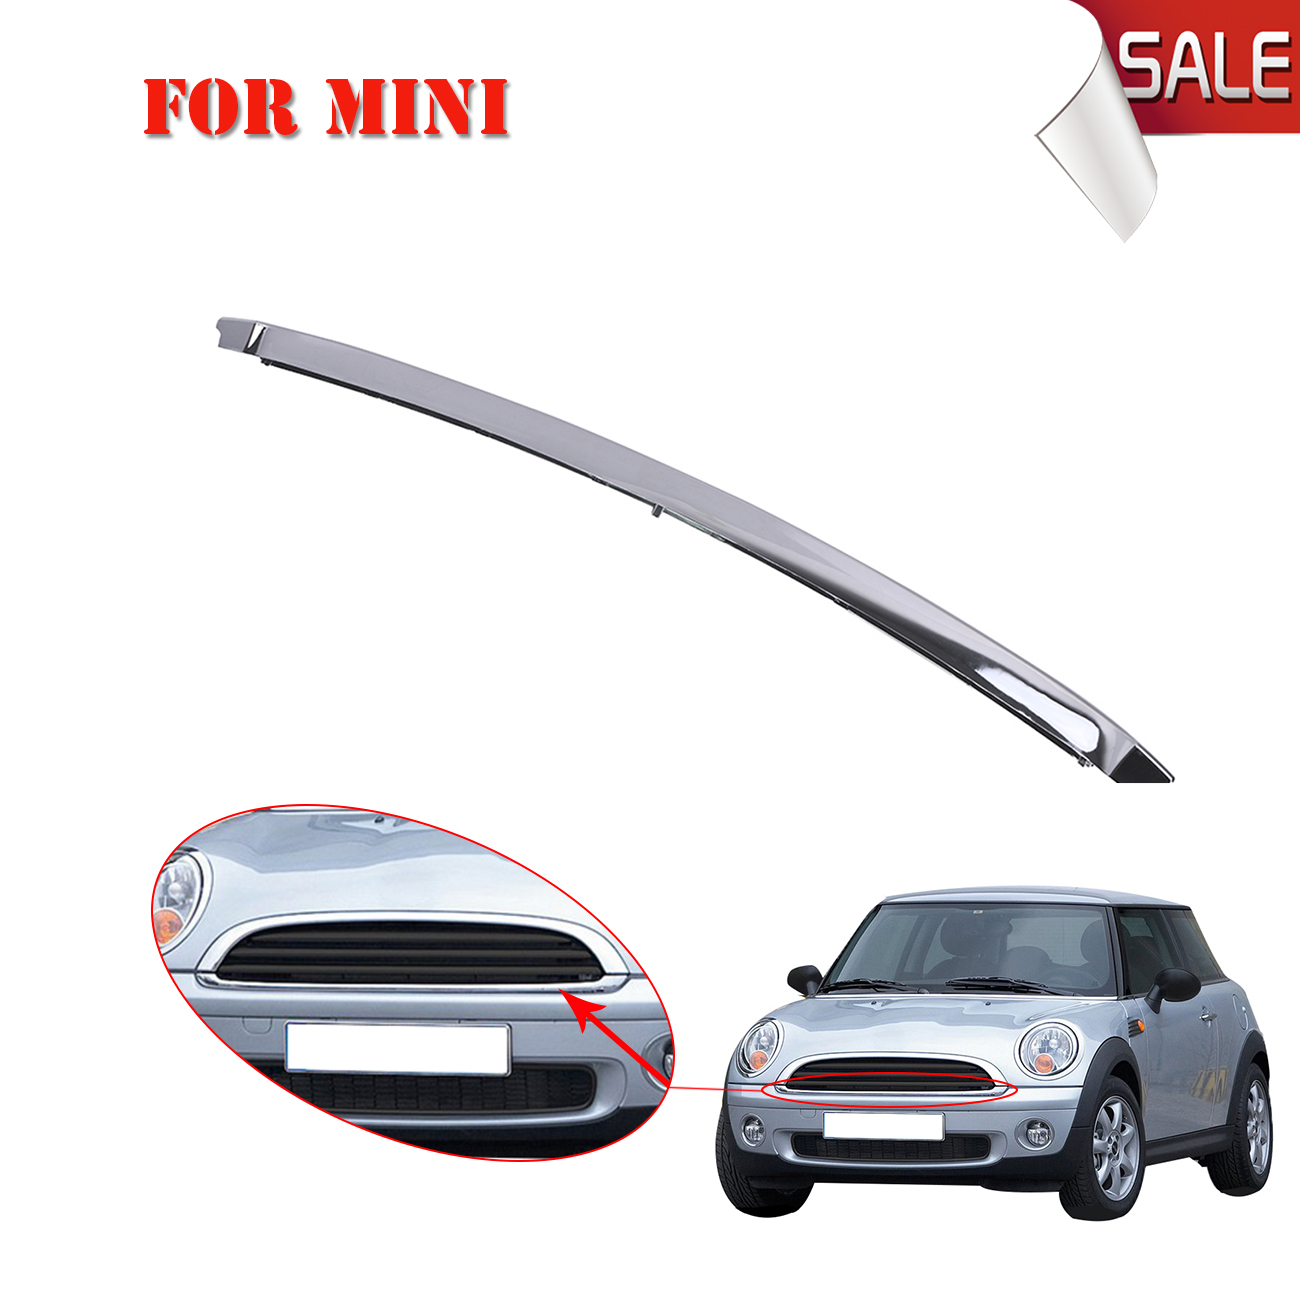 FOR 2007-2015 MINI COOPER FRONT BUMPER DRIVING REPLACEMENT CHROME FOG LIGHT LAMP